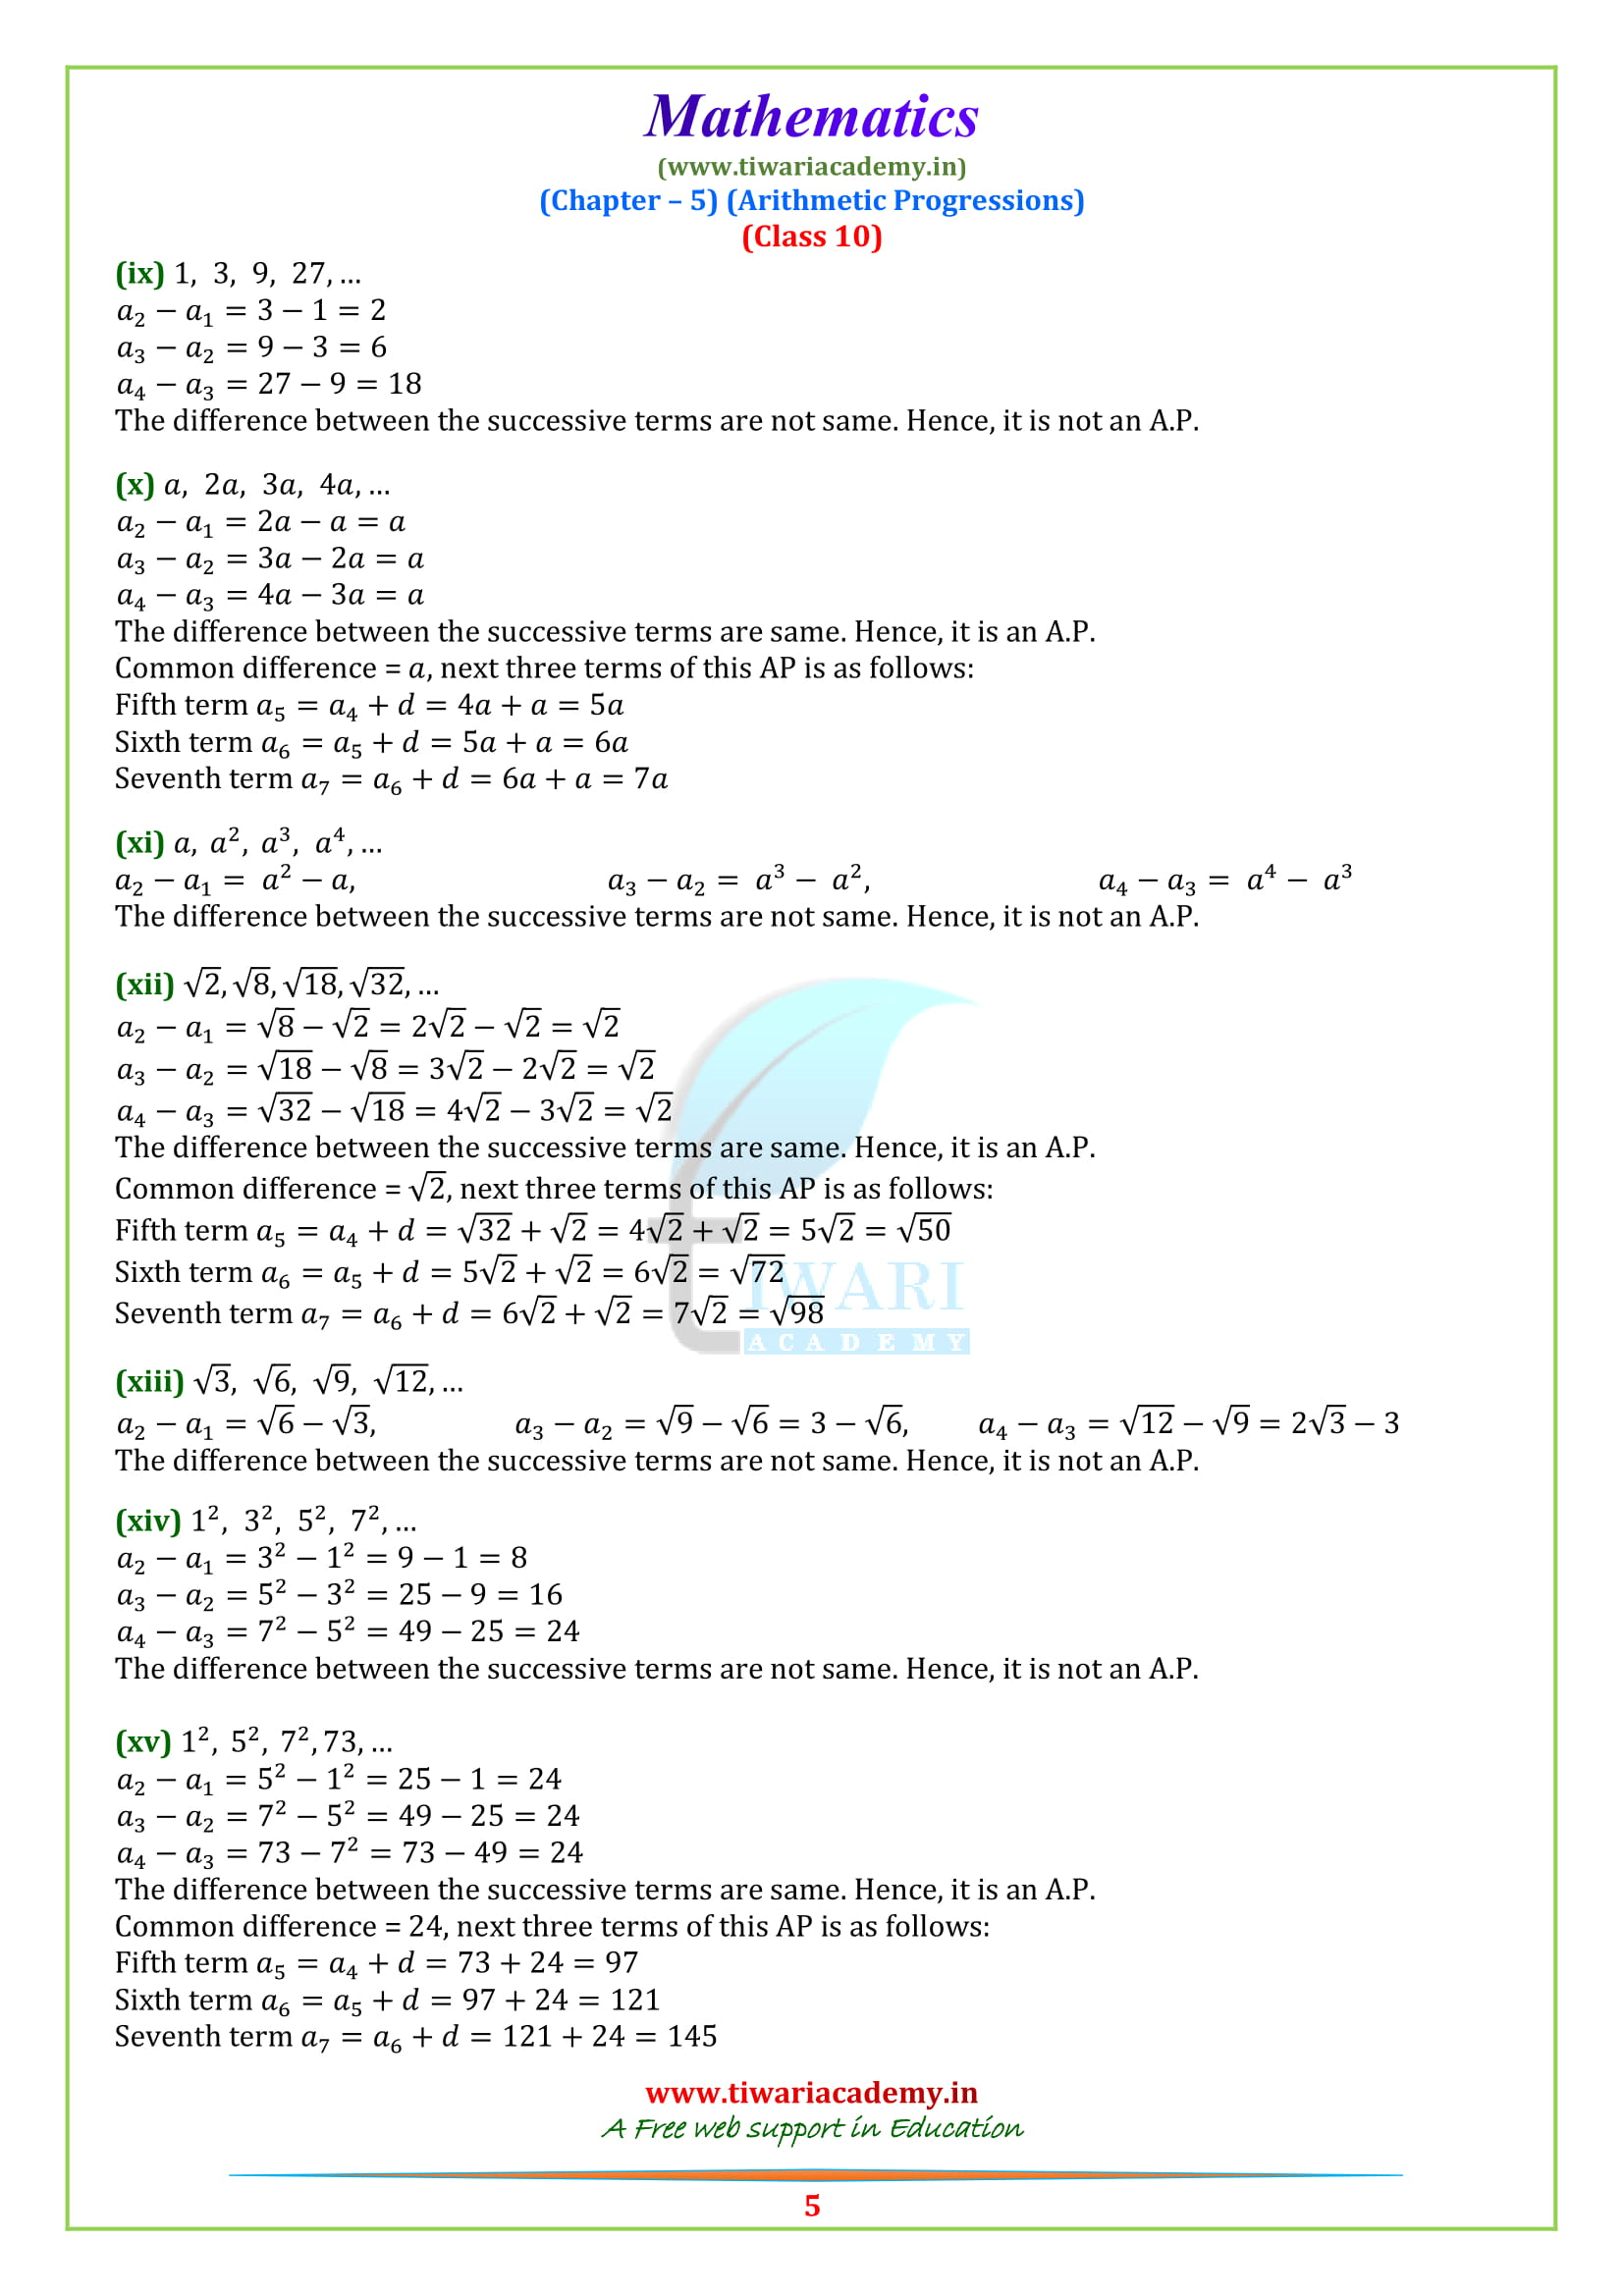 NCERT Solutions for Class 10 Maths Exercise 5.1 updated for session 2018-19.